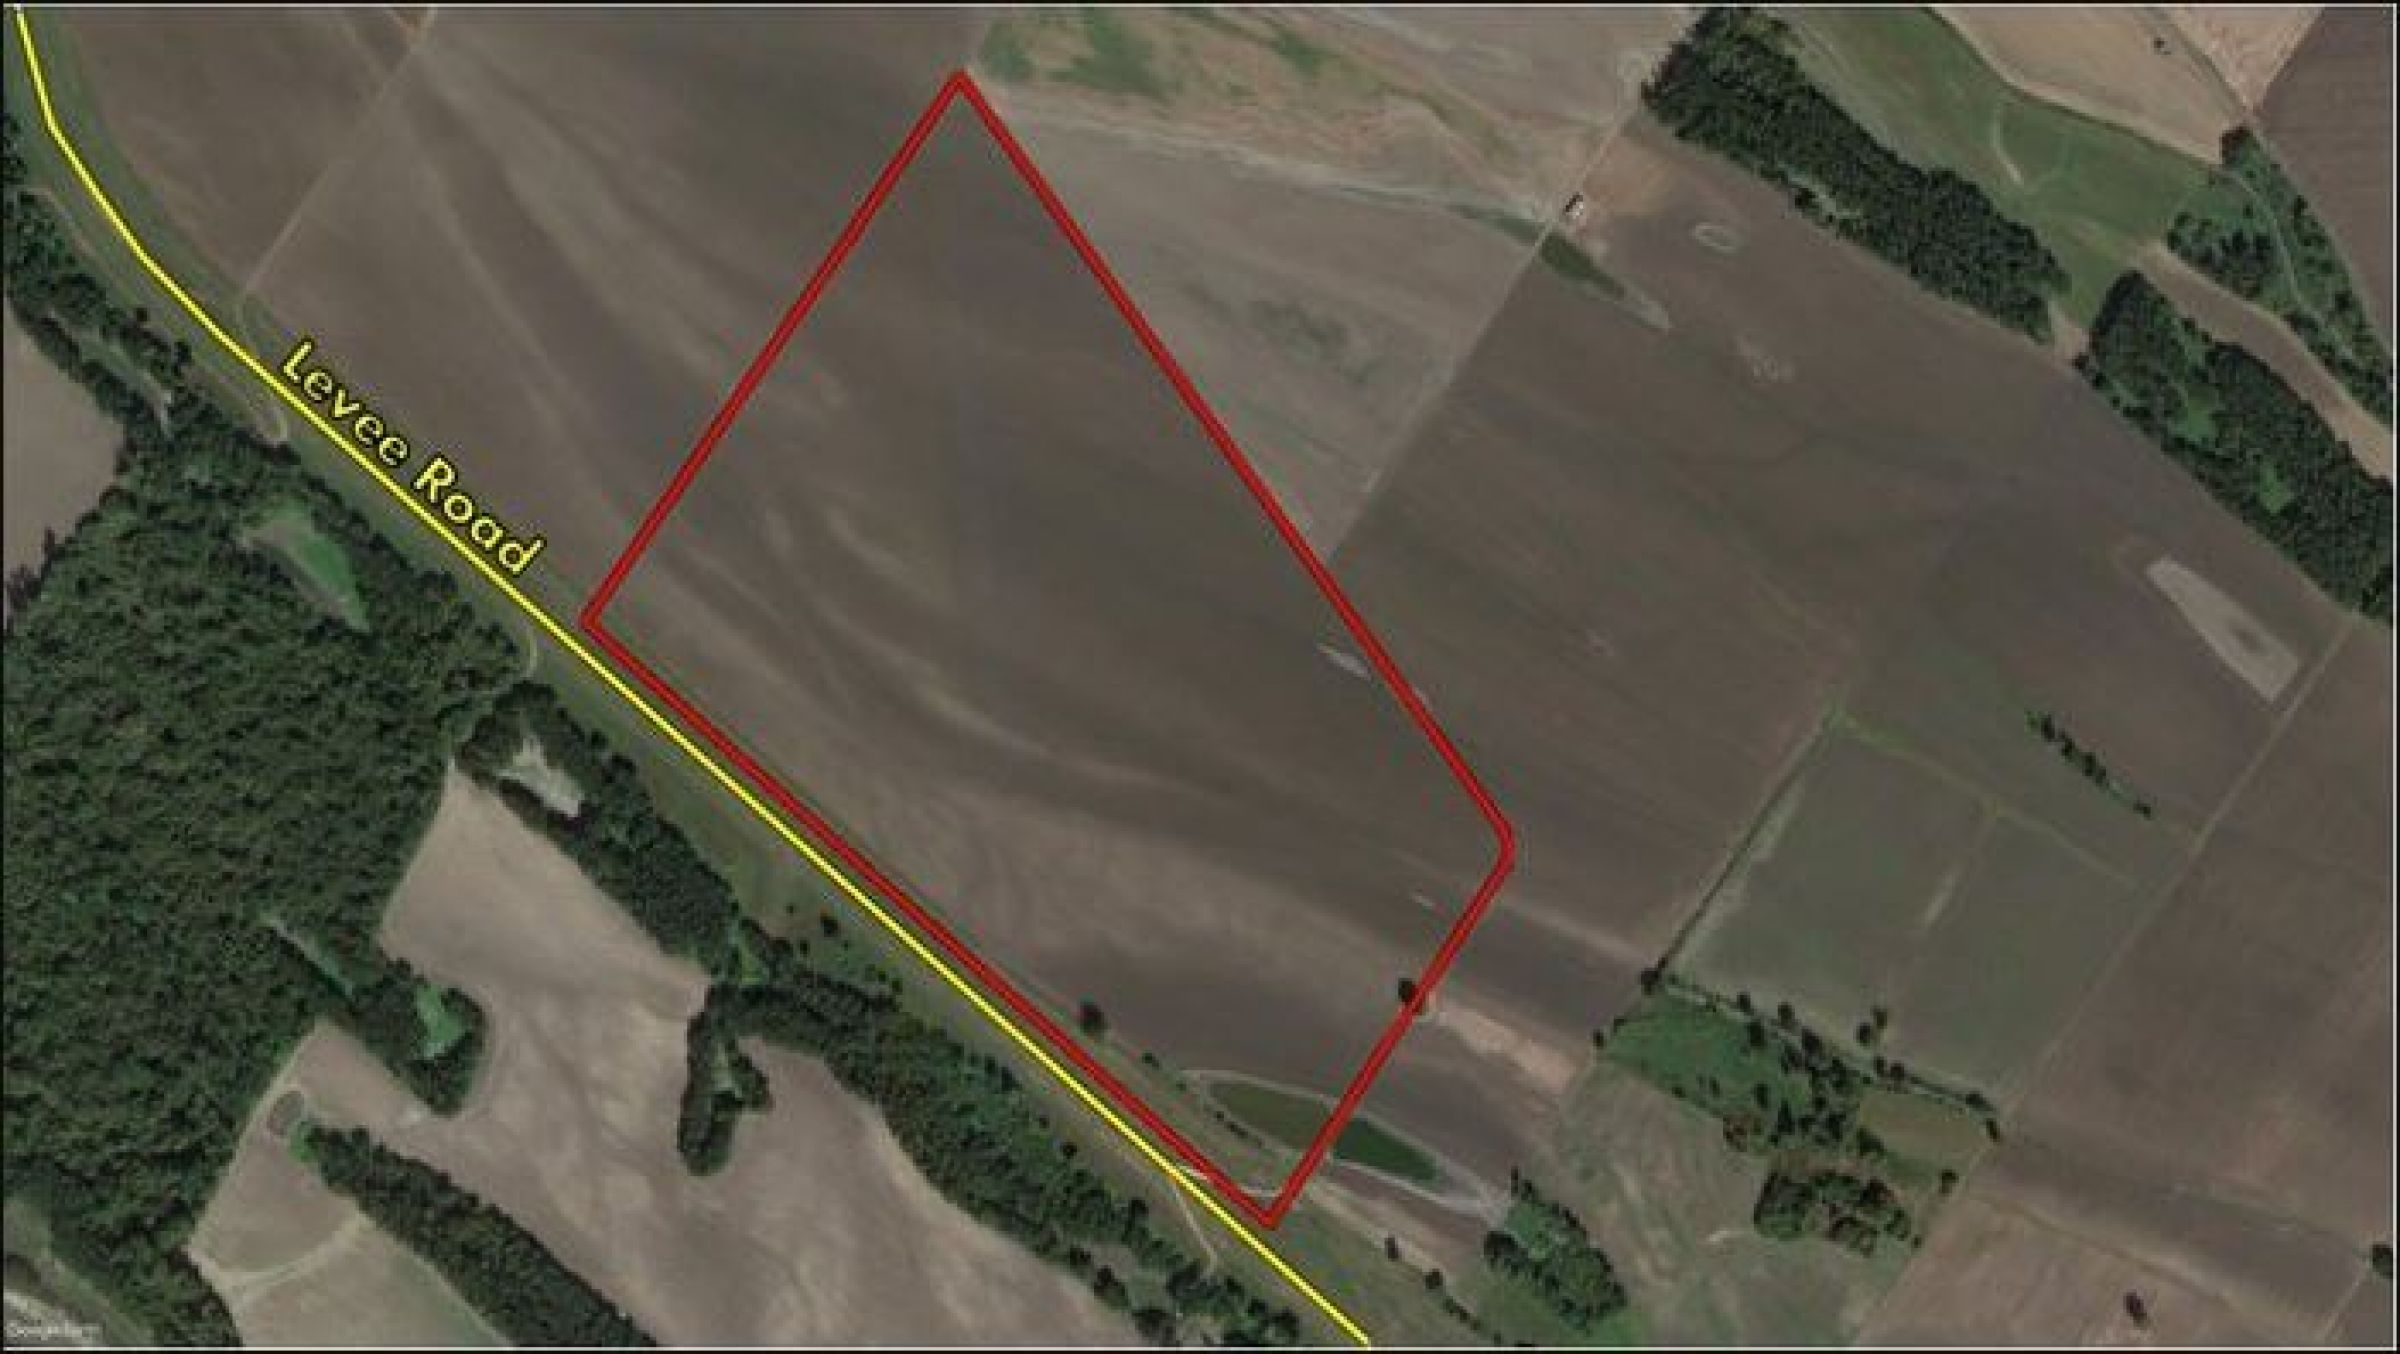 land-monroe-county-illinois-111-acres-listing-number-15264-0-2020-11-20-155152.JPG